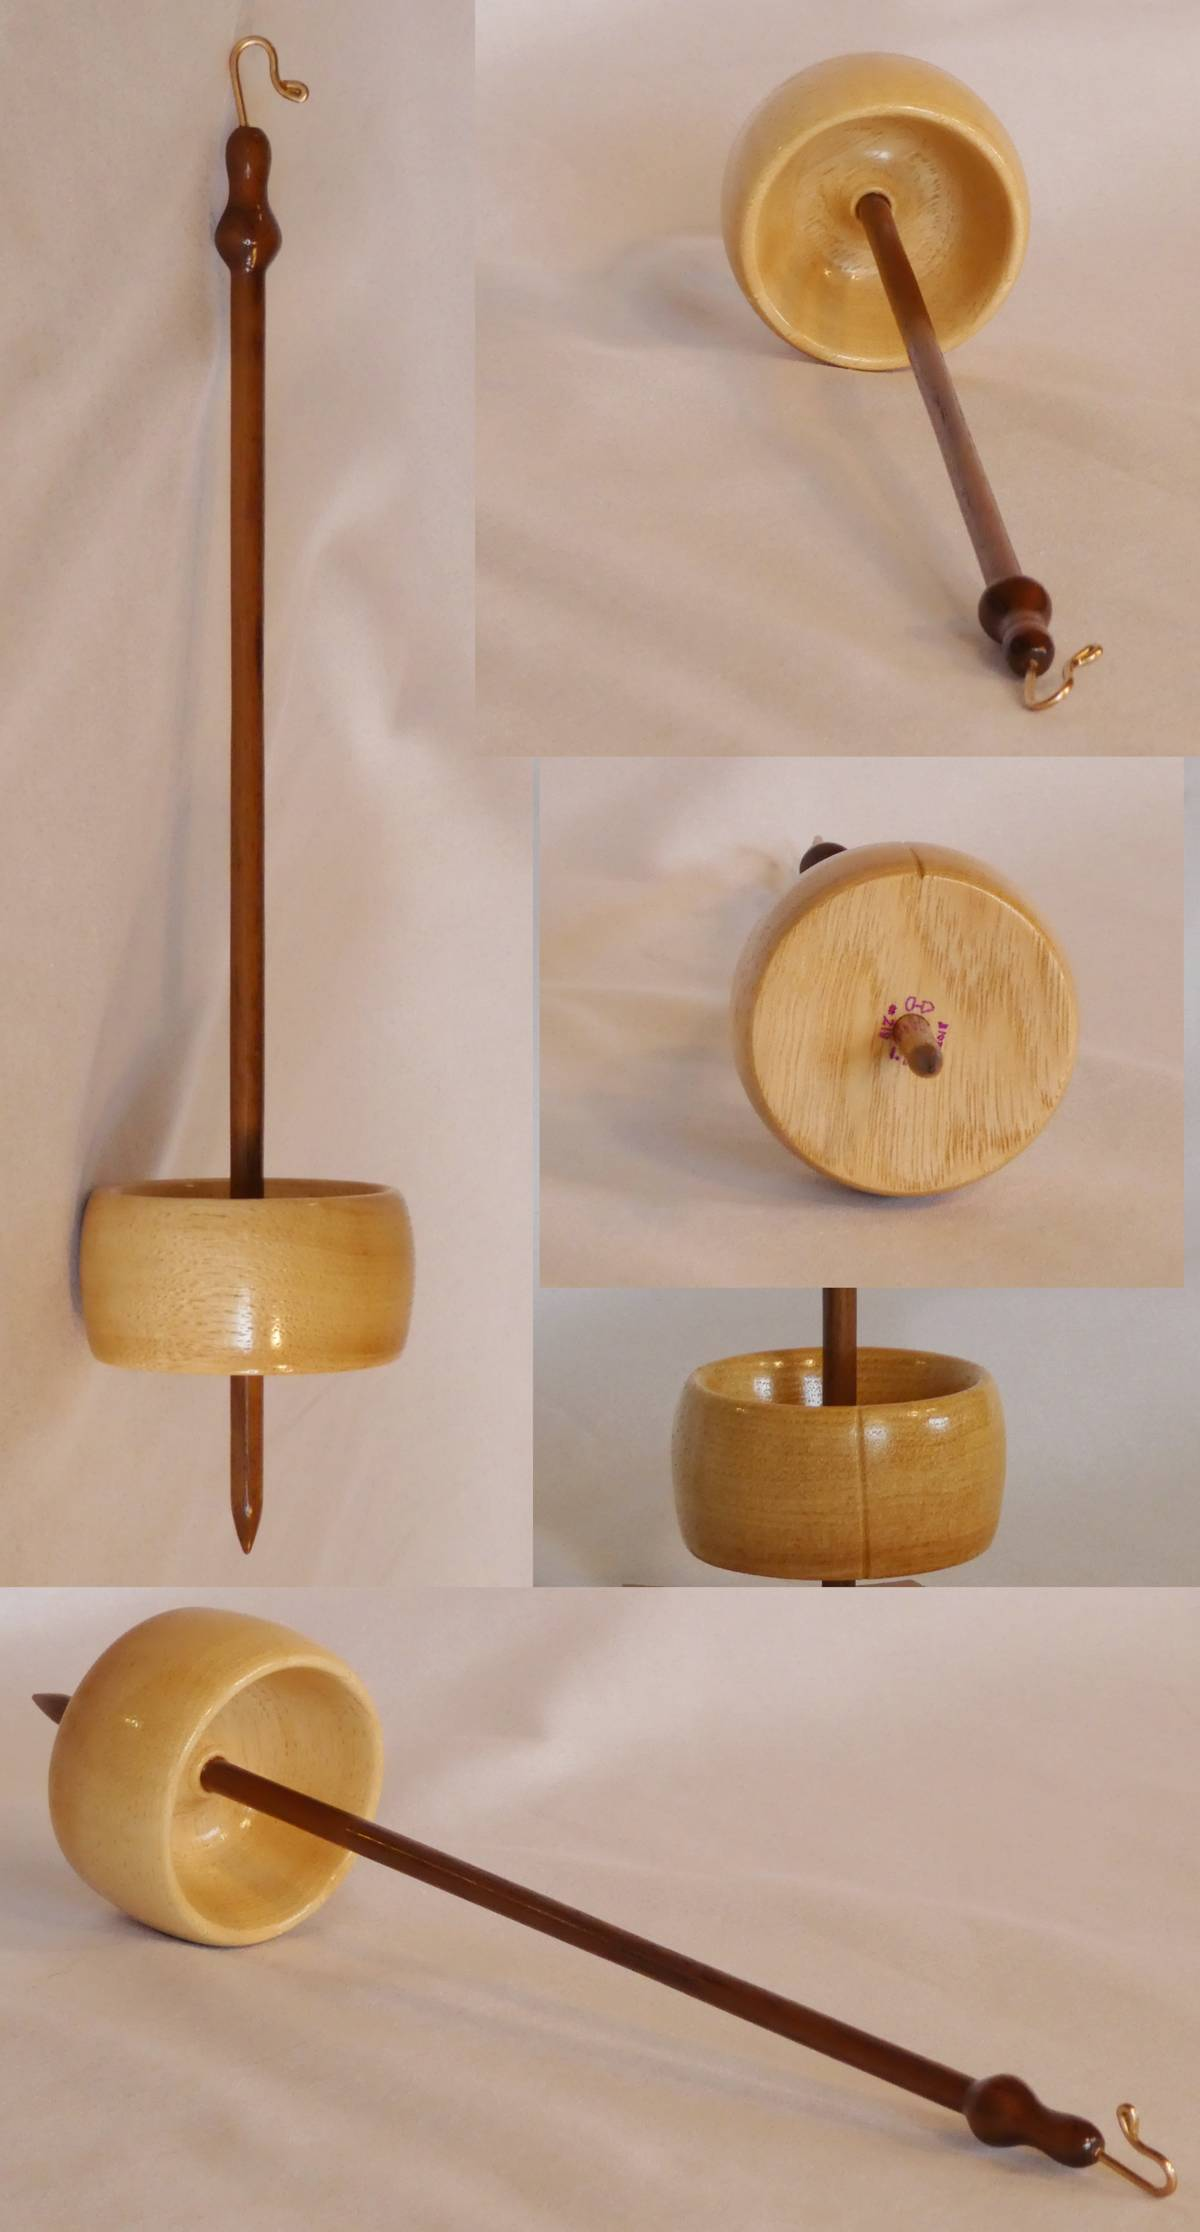 Low whorl suspended drop spindle handturned and made by Cynthia D. Haney from Hickory and Walnut.